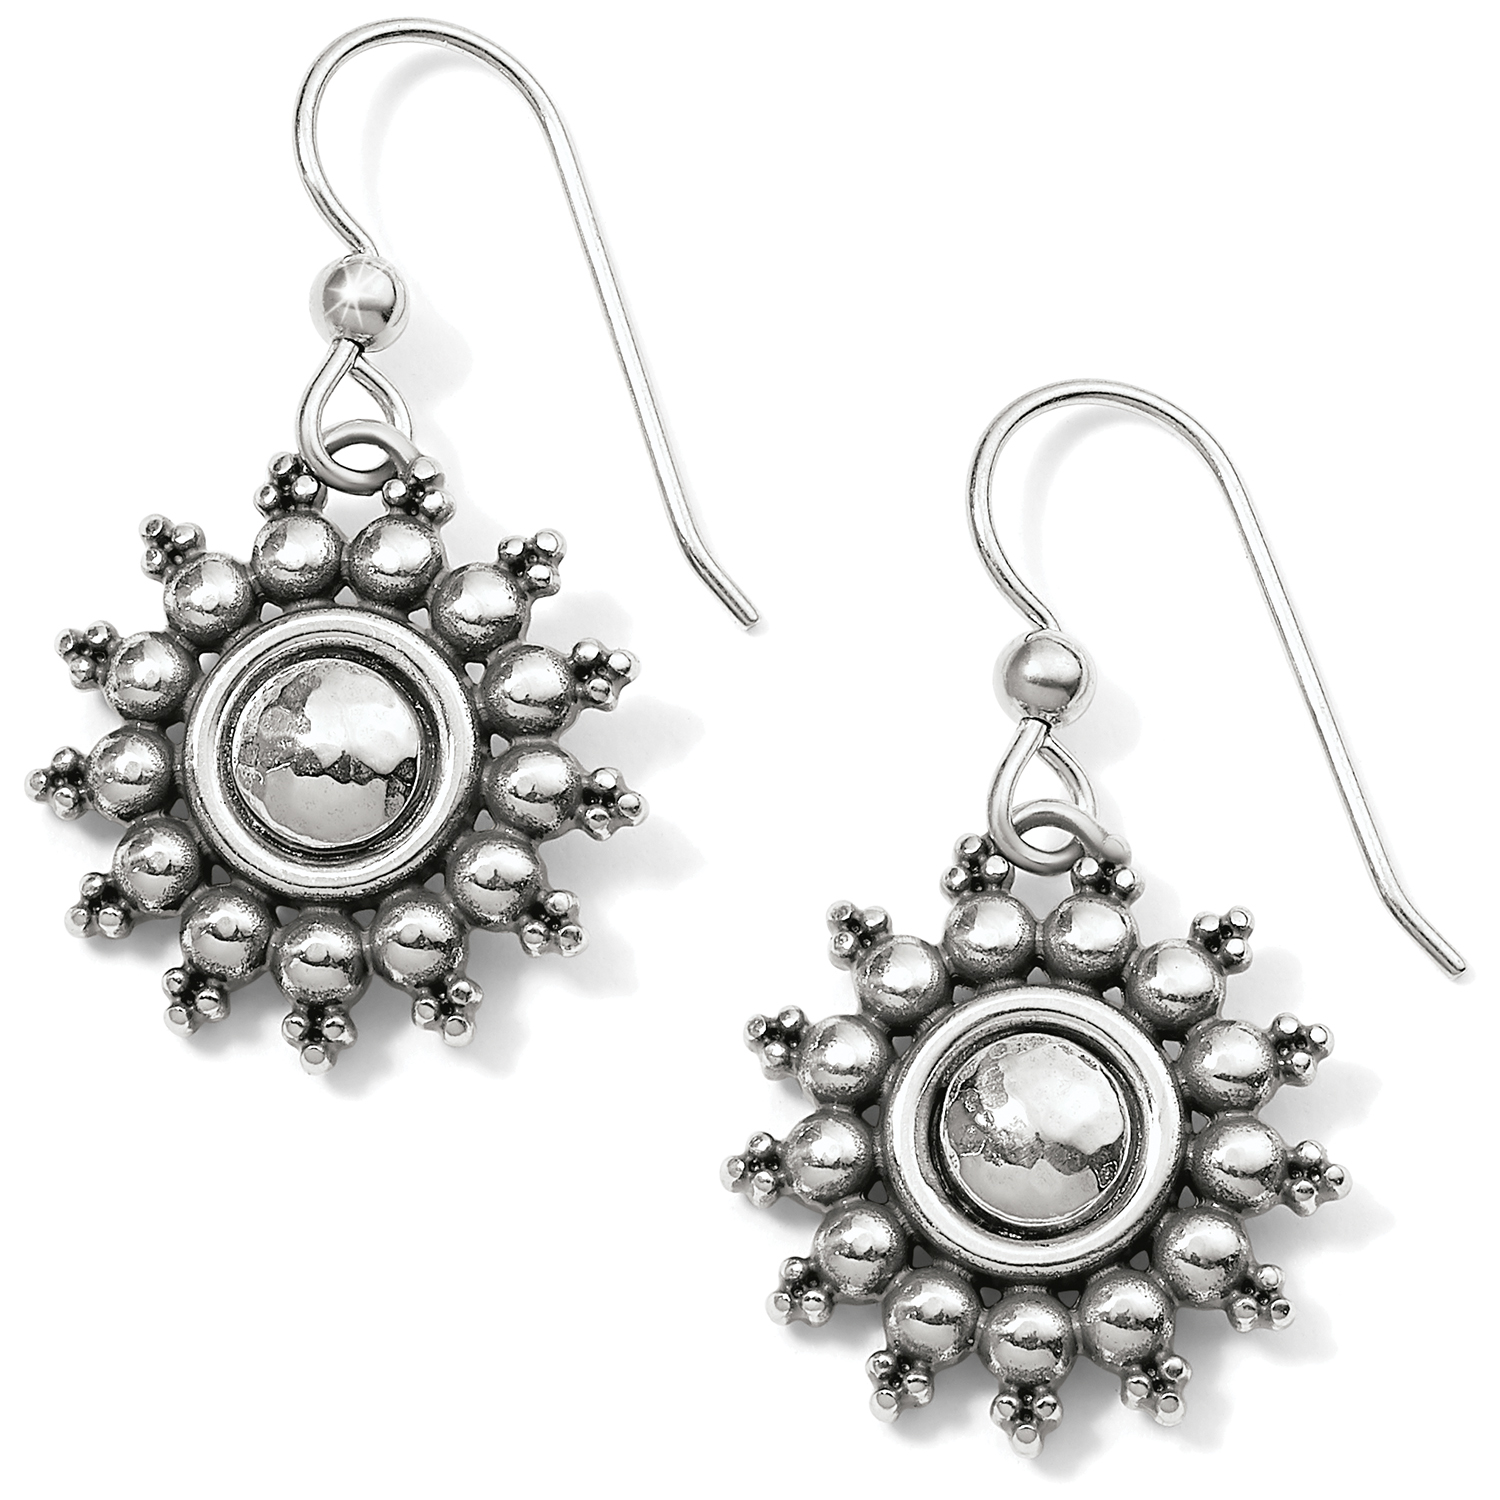 Telluride French Wire Earrings from Brighton